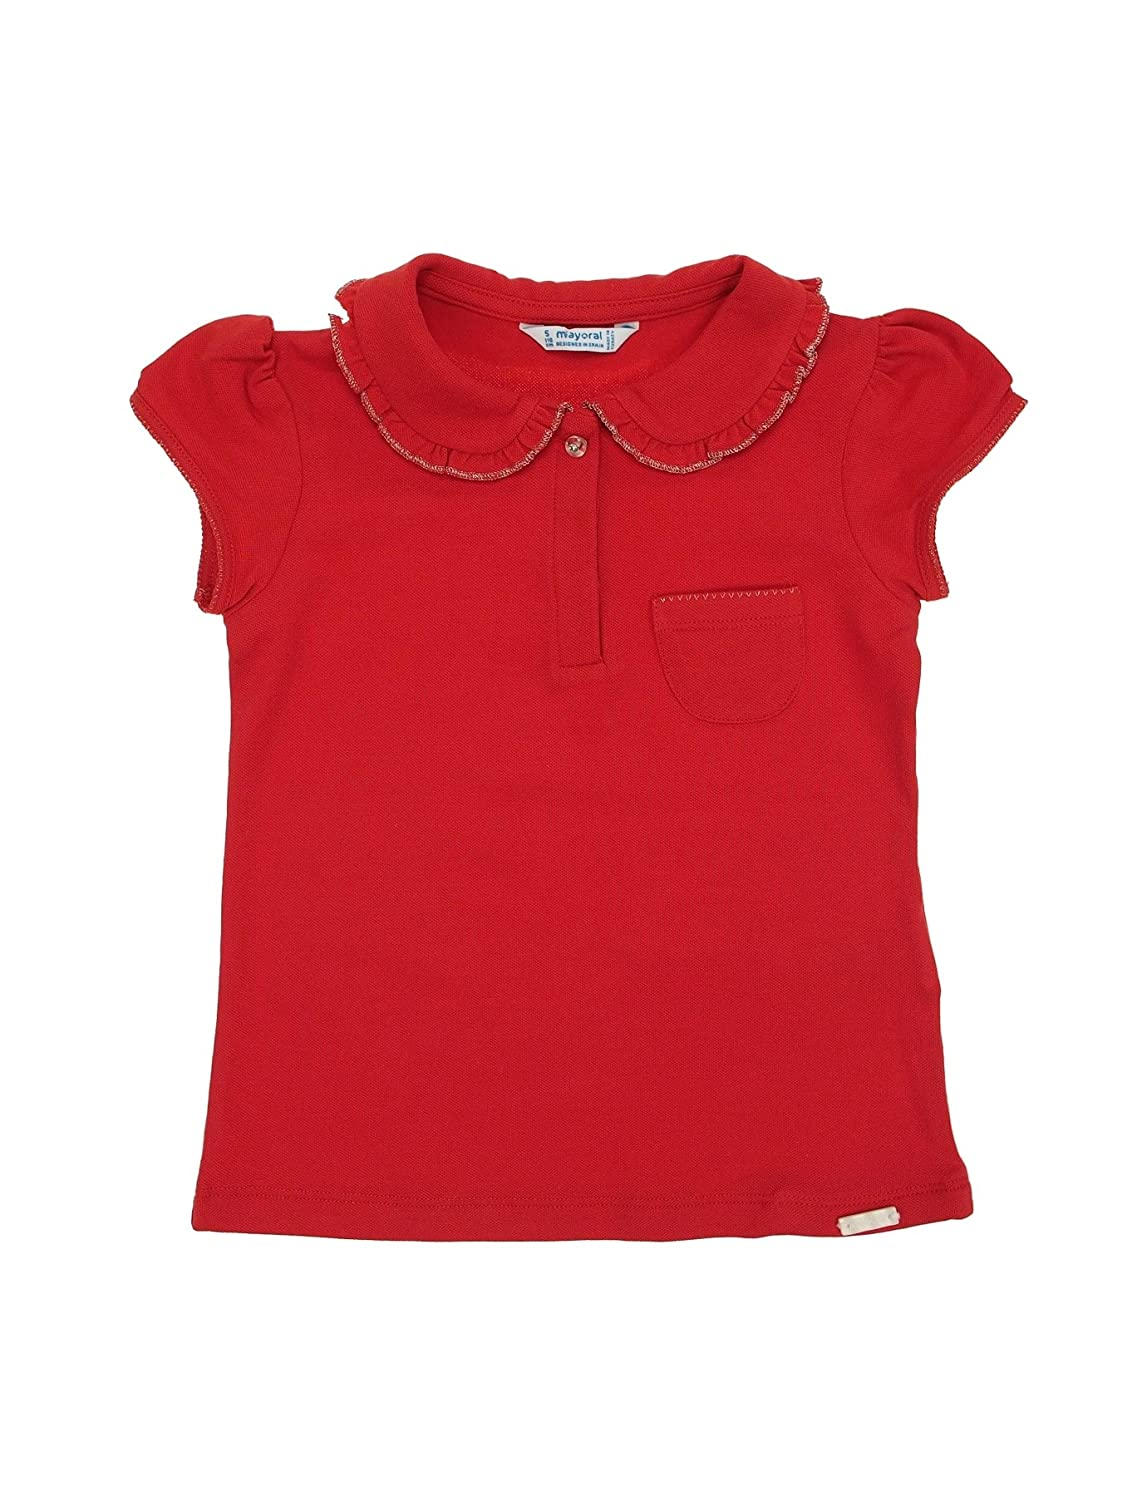 Red Mayoral 0147 S//s Polo for Girls